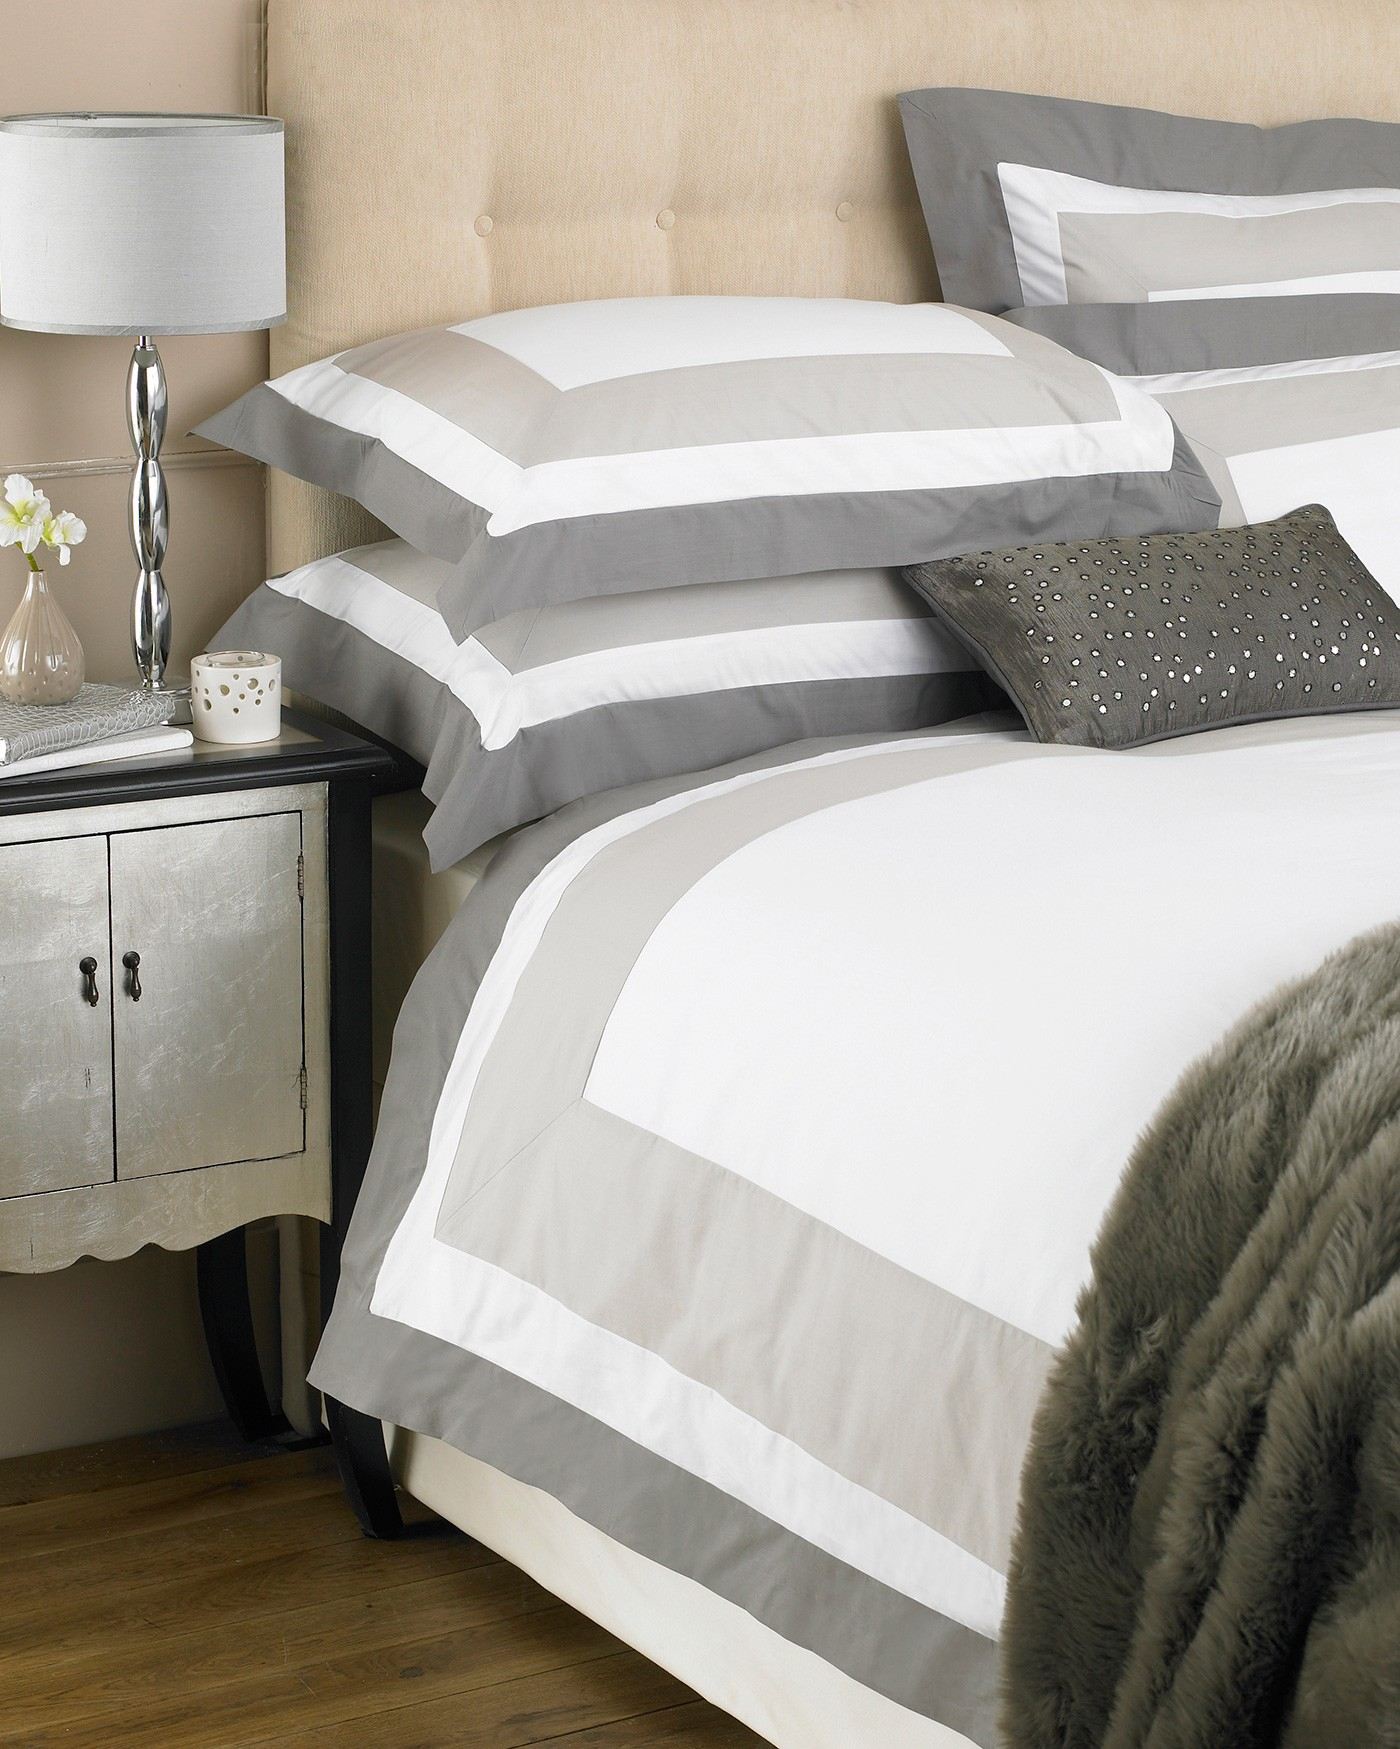 The Home Furnishings Company 100% Cotton Cambridge Natural/Grey/Taupe Single Size Duvet Cover amd Pillow Case